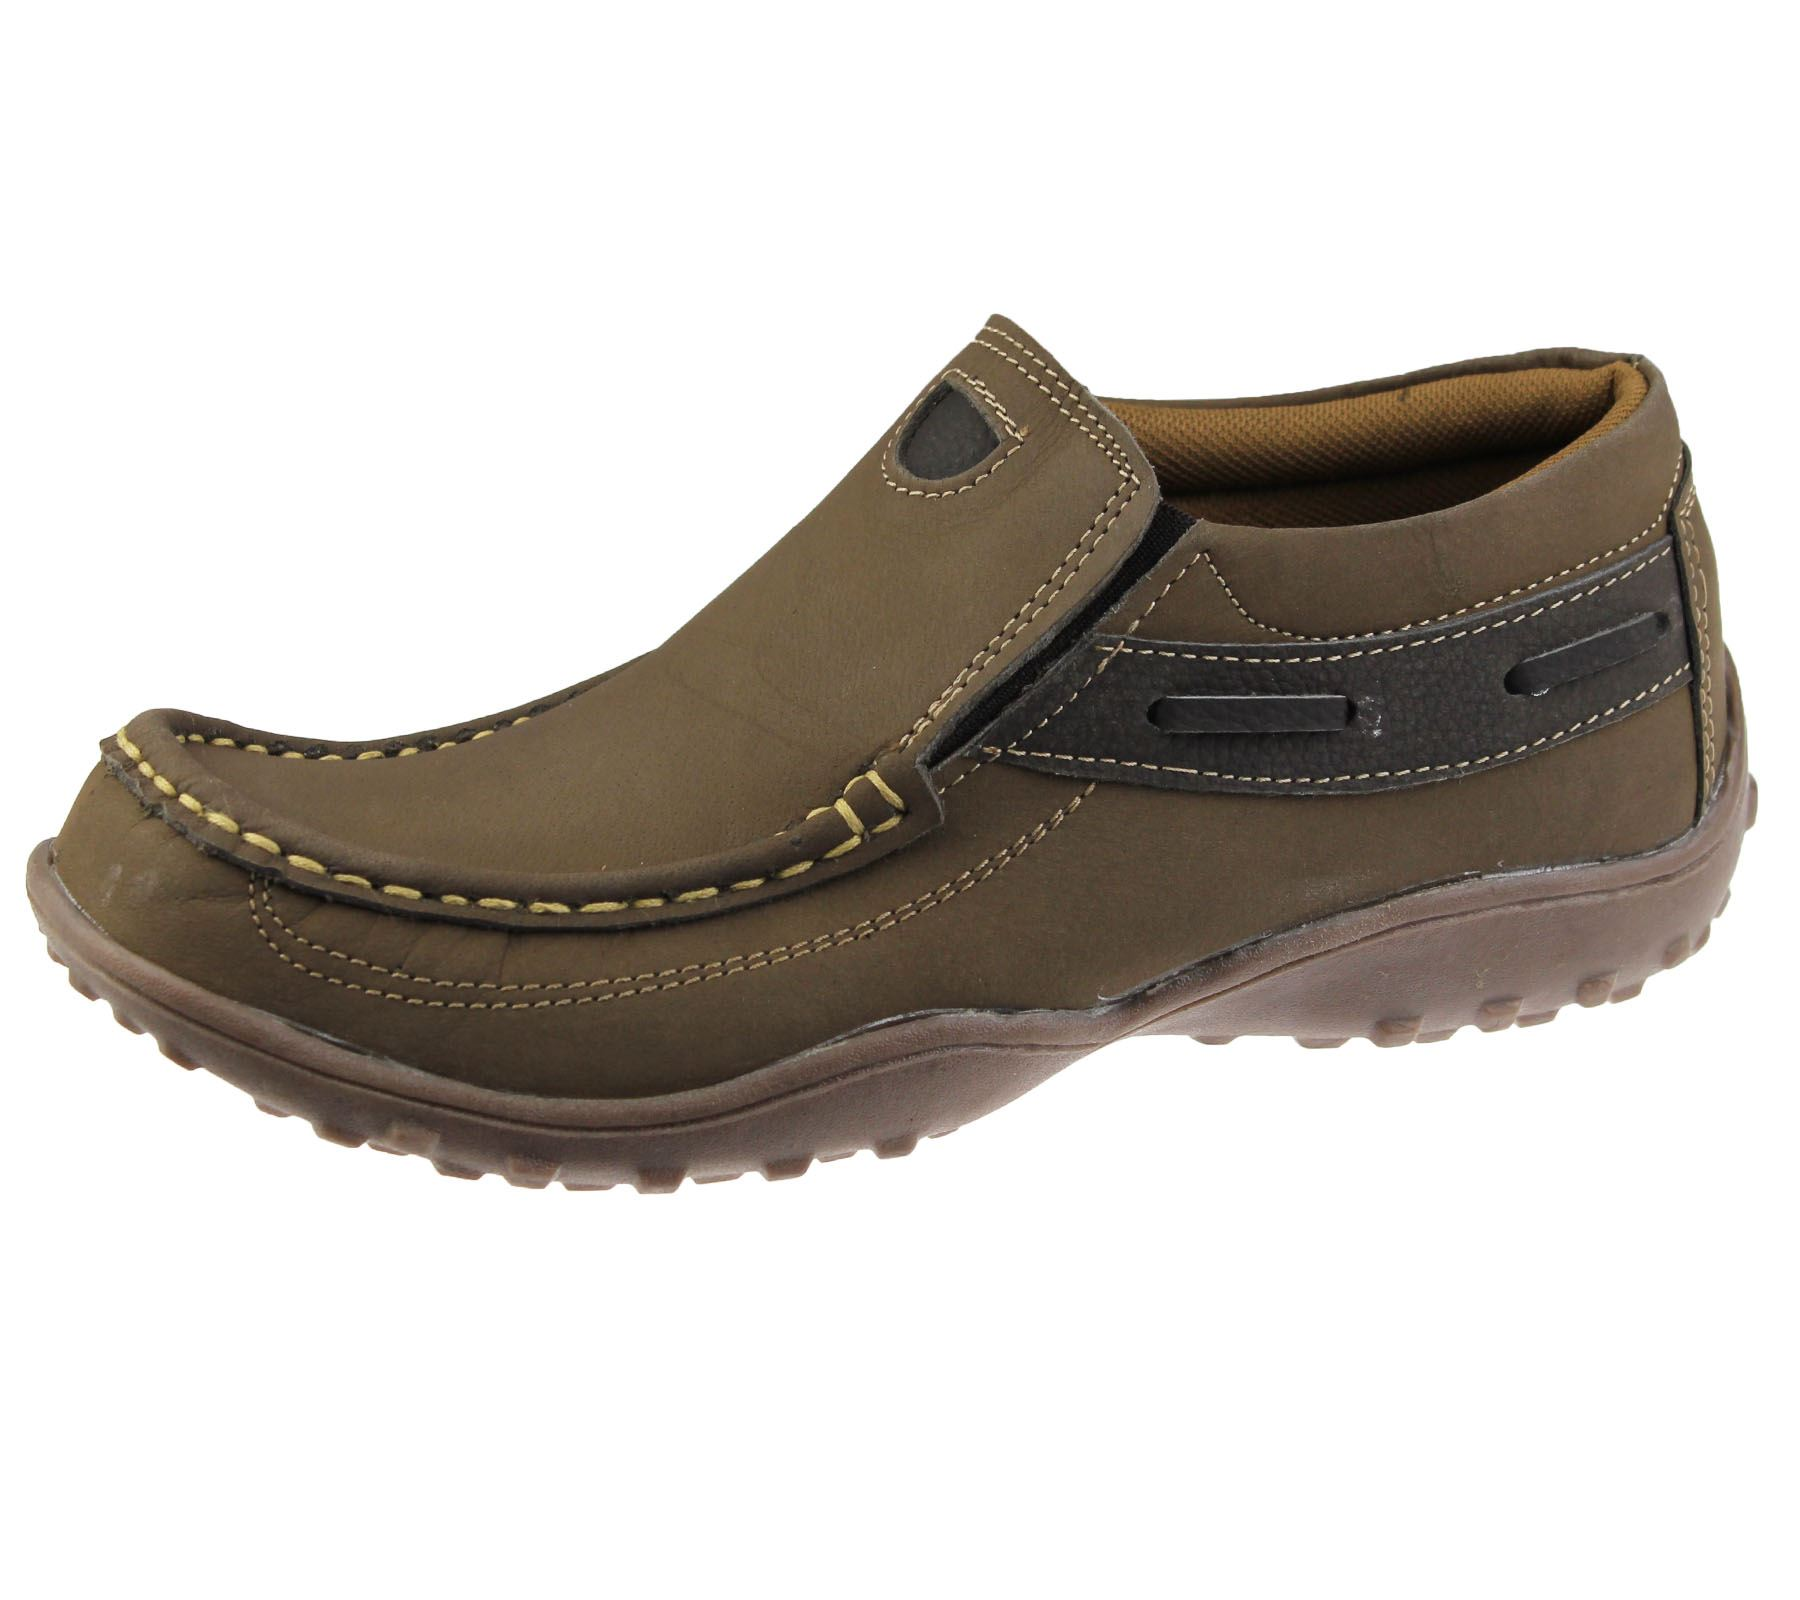 mens casual shoes slip on deck loafers smart walking